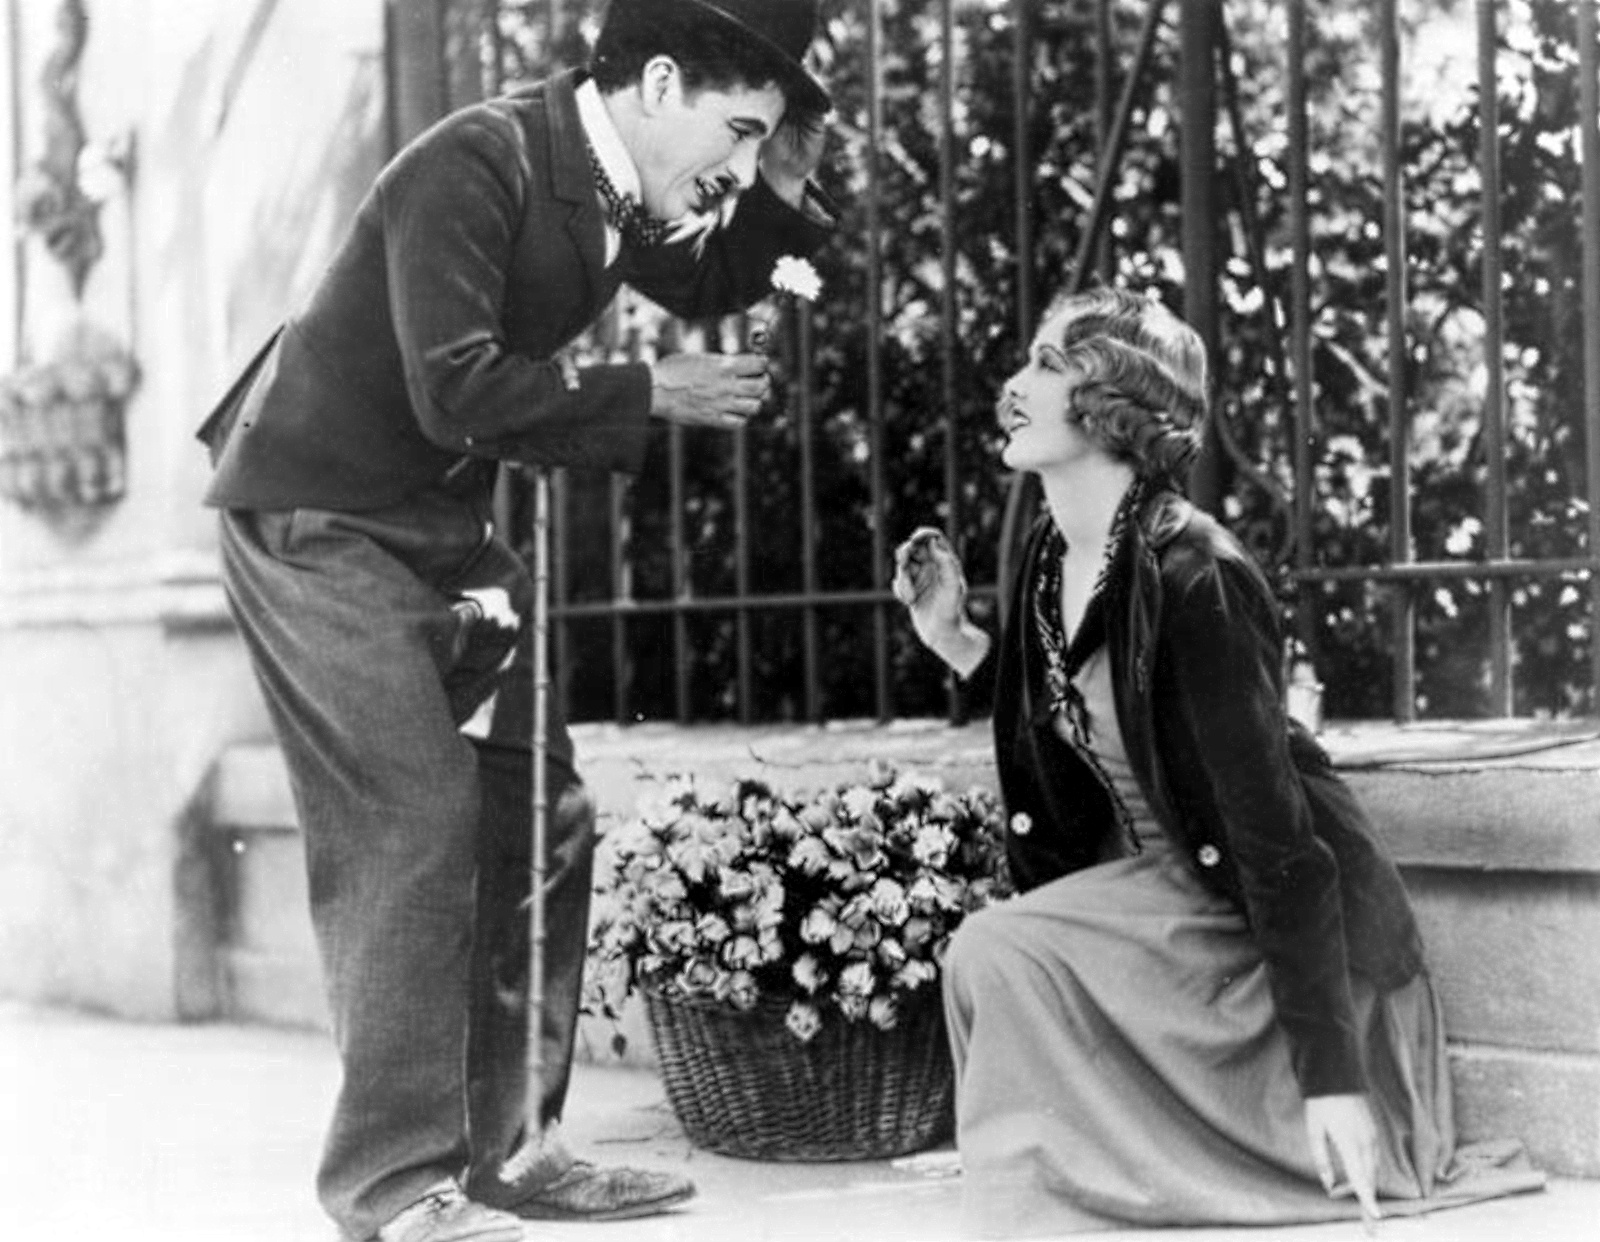 an essay on the life and role in comedy films of charlie chaplin Classic films: charlie chaplin's the kid the kid was one of the first films to combine elements of comedy and drama in the same motion picture.